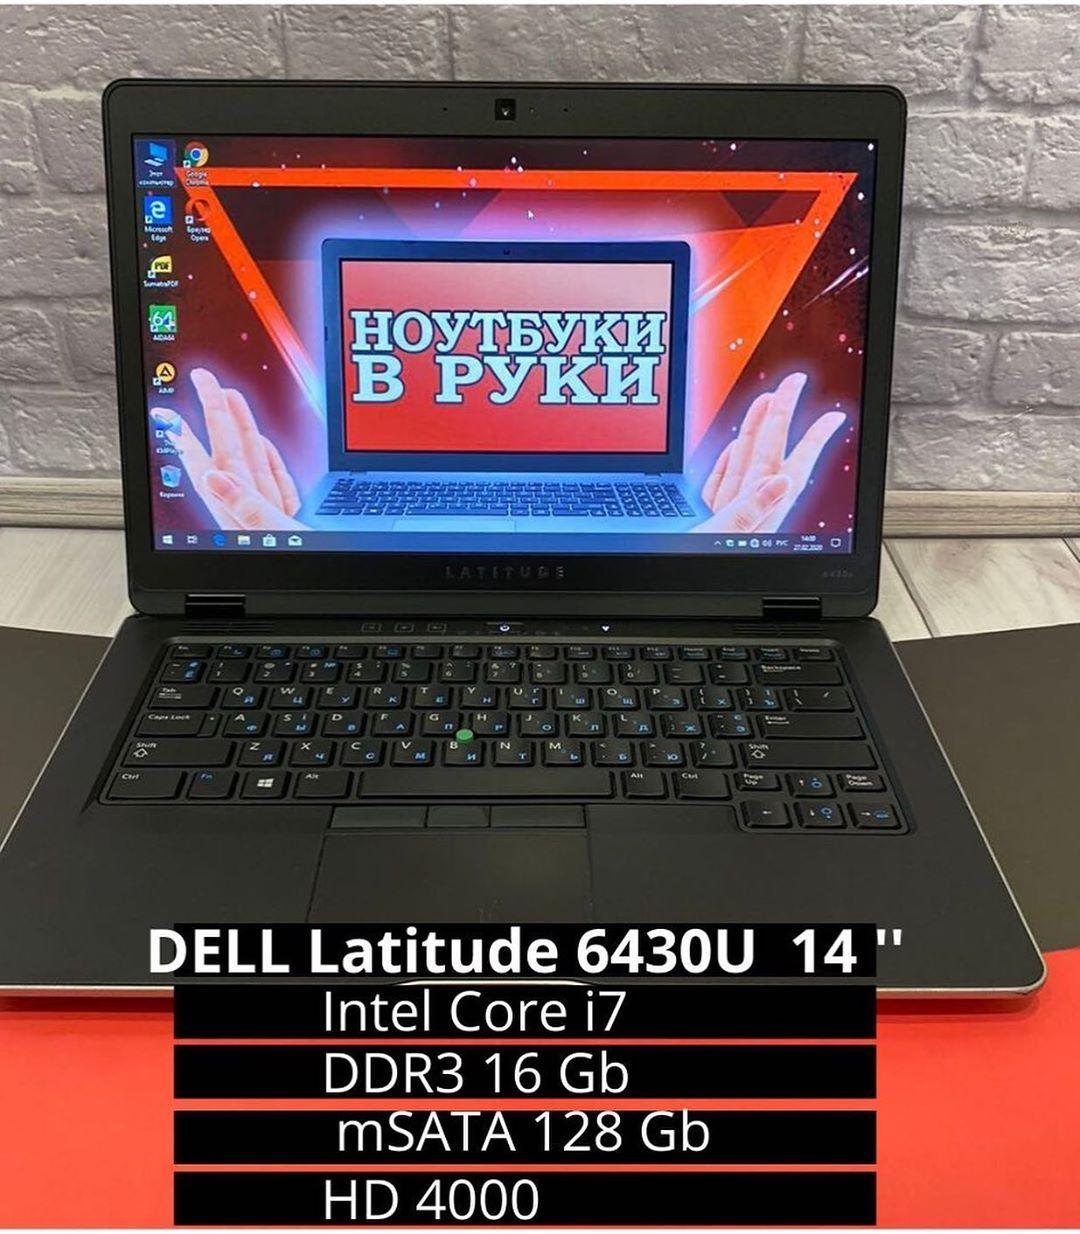 Ноутбук DELL LATITUDE6430U 13 (I7-3667U / DDR3 8GB / mSATA 128 GB / HD 4000)